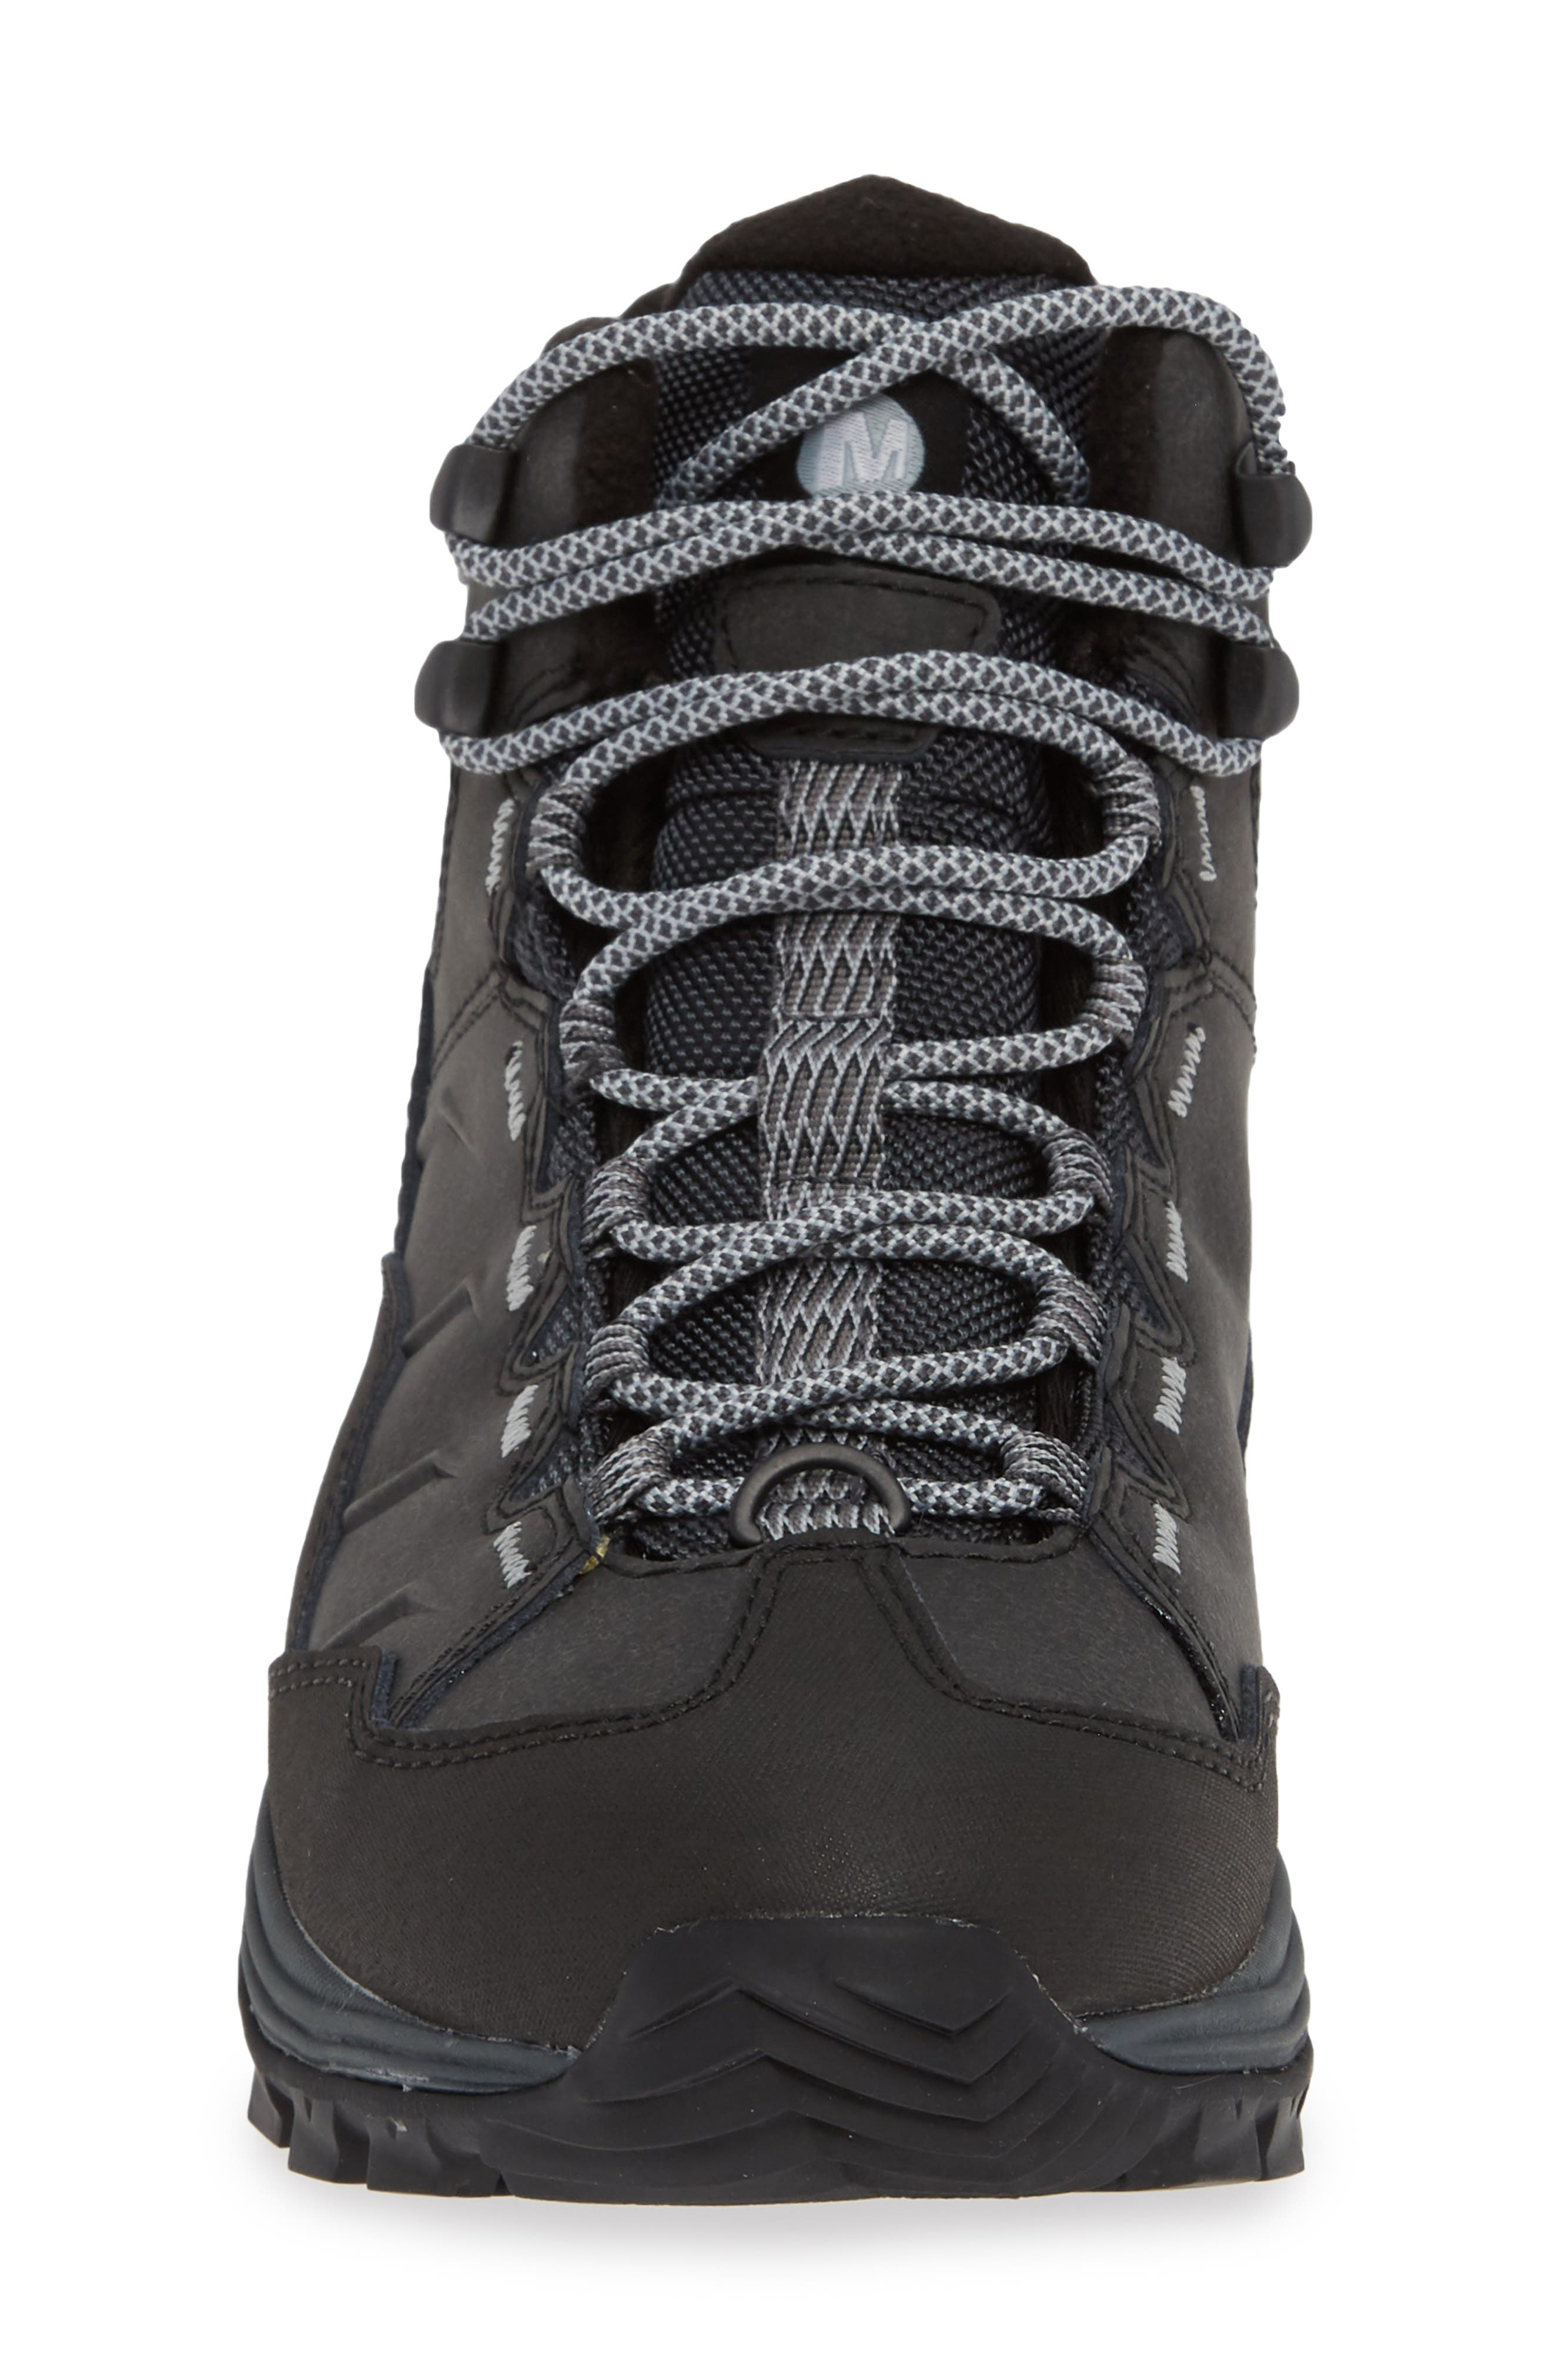 Thermo Chill Waterproof Snow Boot,                             Alternate thumbnail 4, color,                             BLACK LEATHER